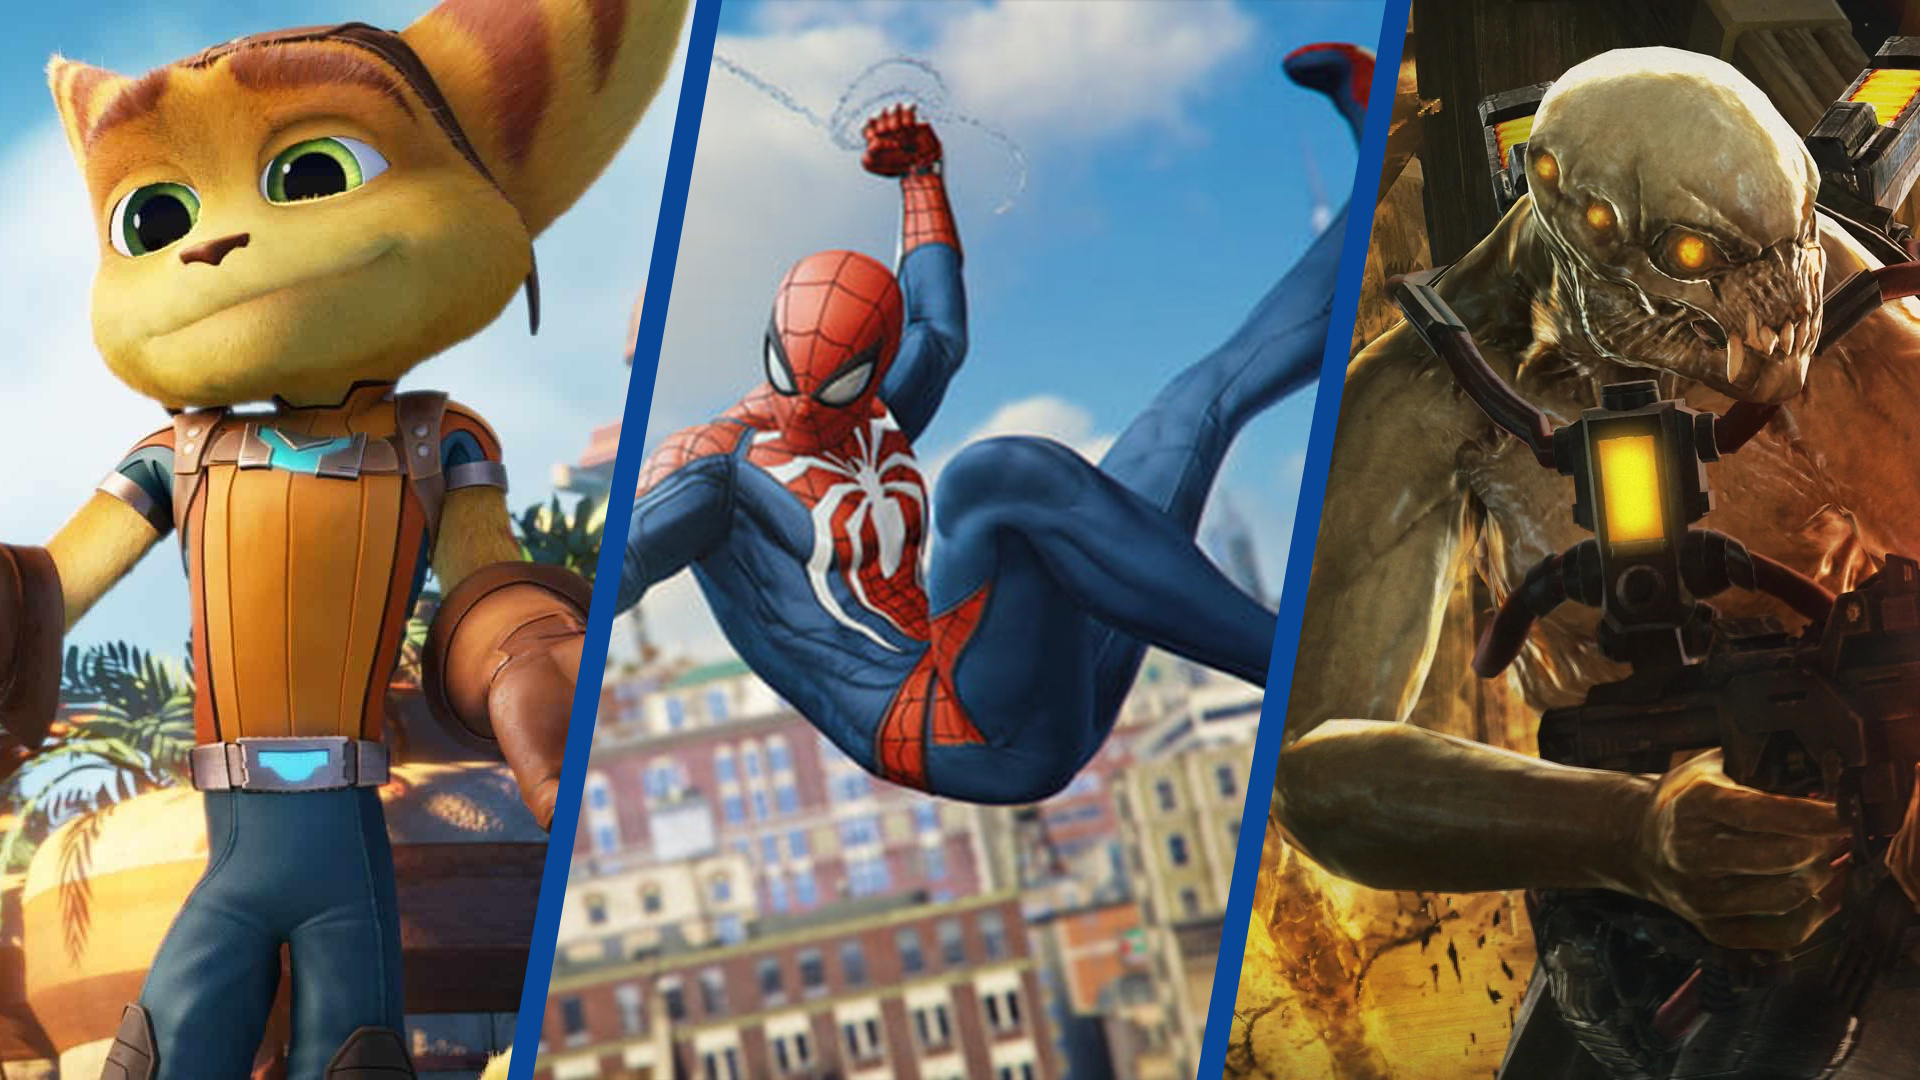 Poll What Do You Hope Insomniac Games First Ps5 Project Is